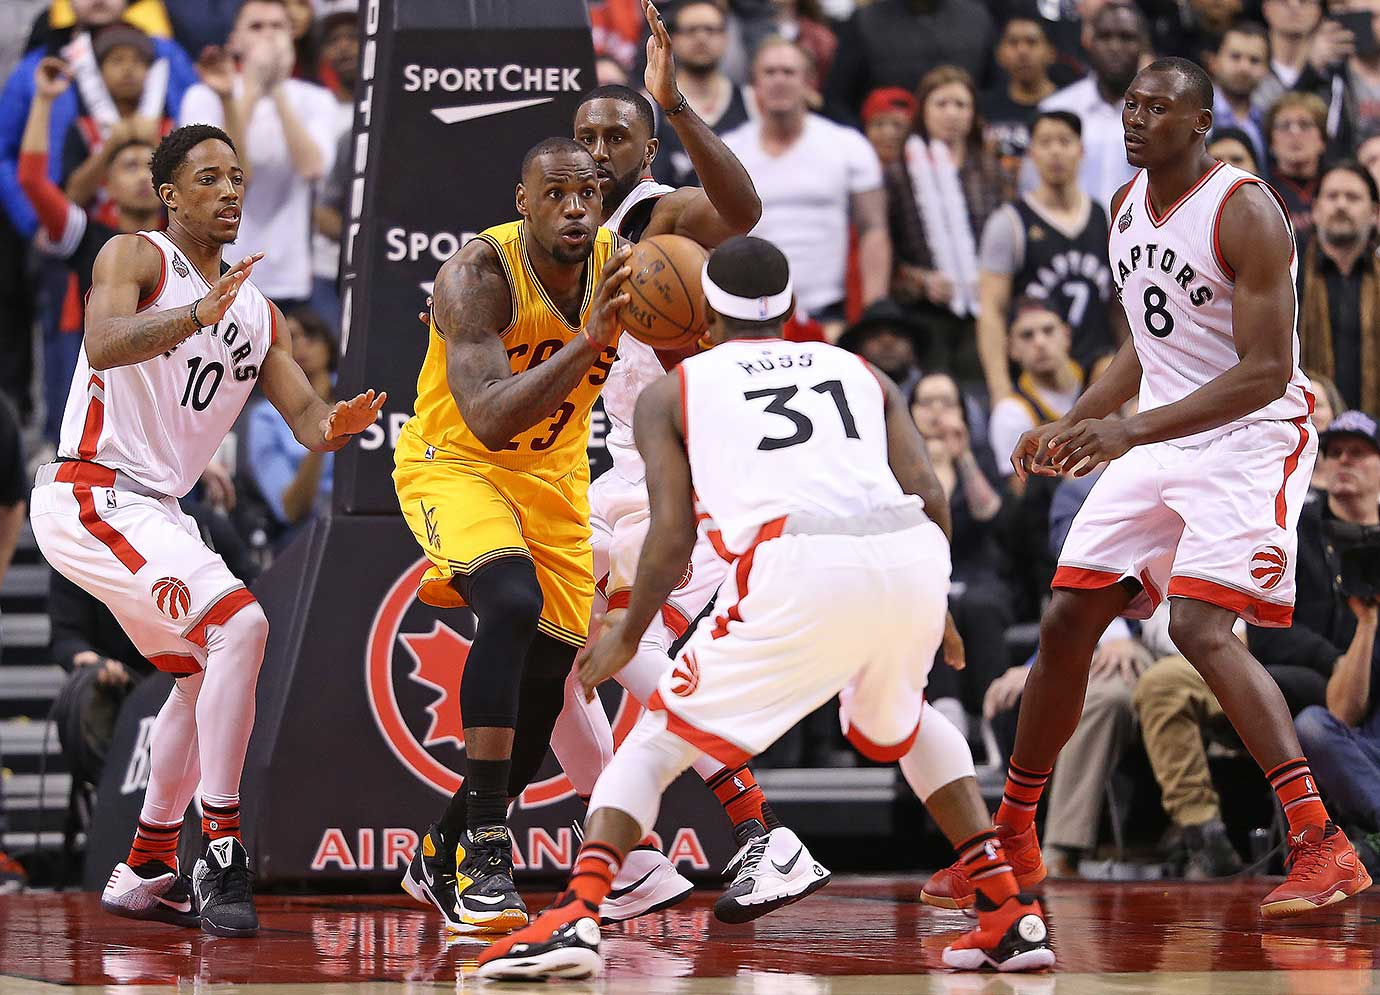 LeBron James of the Cleveland Cavaliers is heavily covered by the Toronto Raptors.